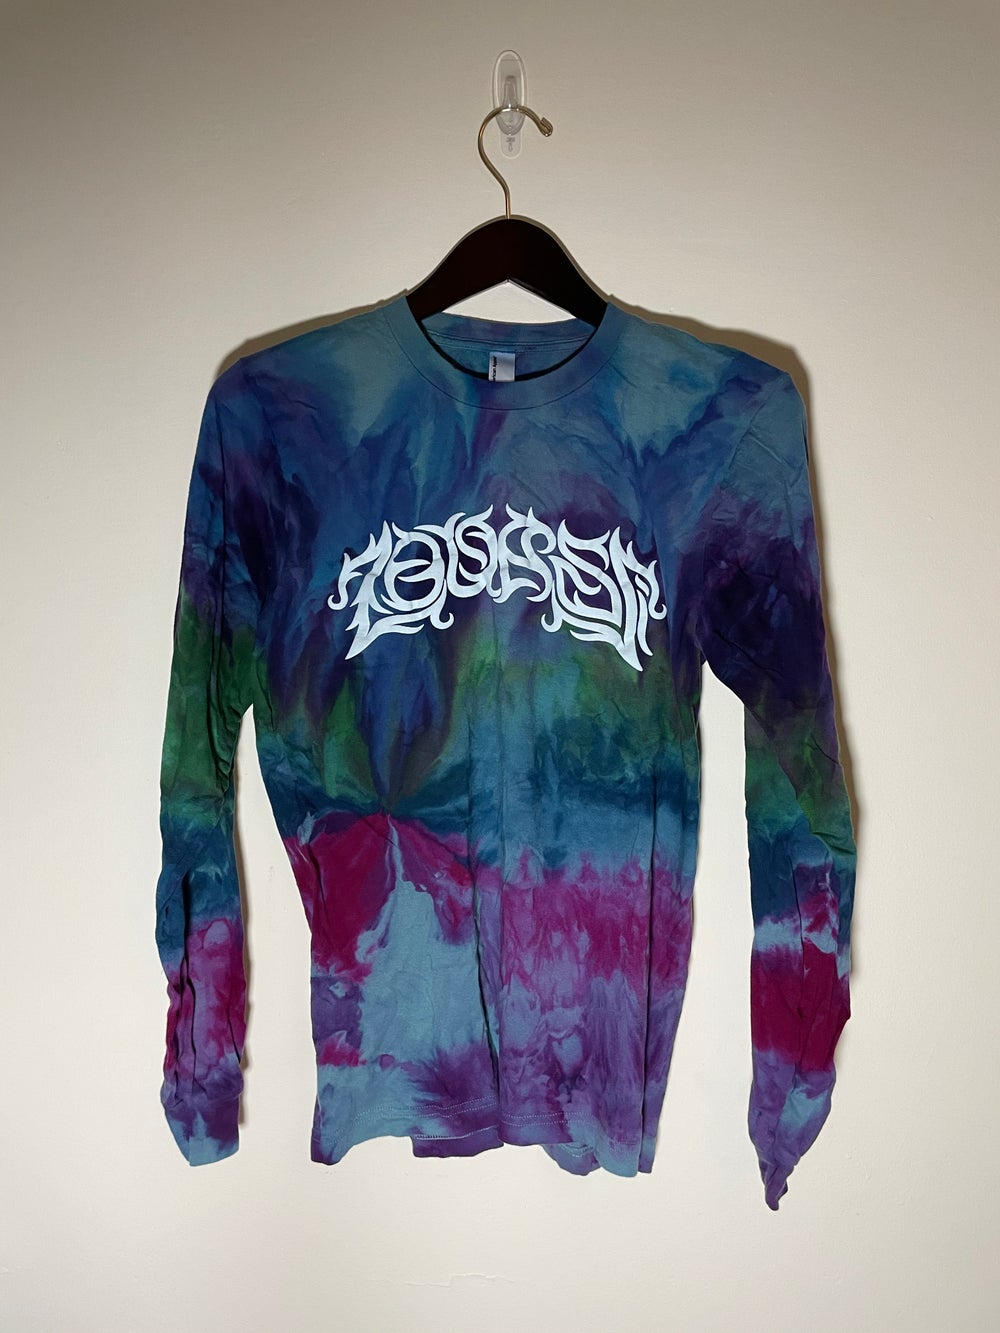 Long Sleeve Tie Dye #3 - Small